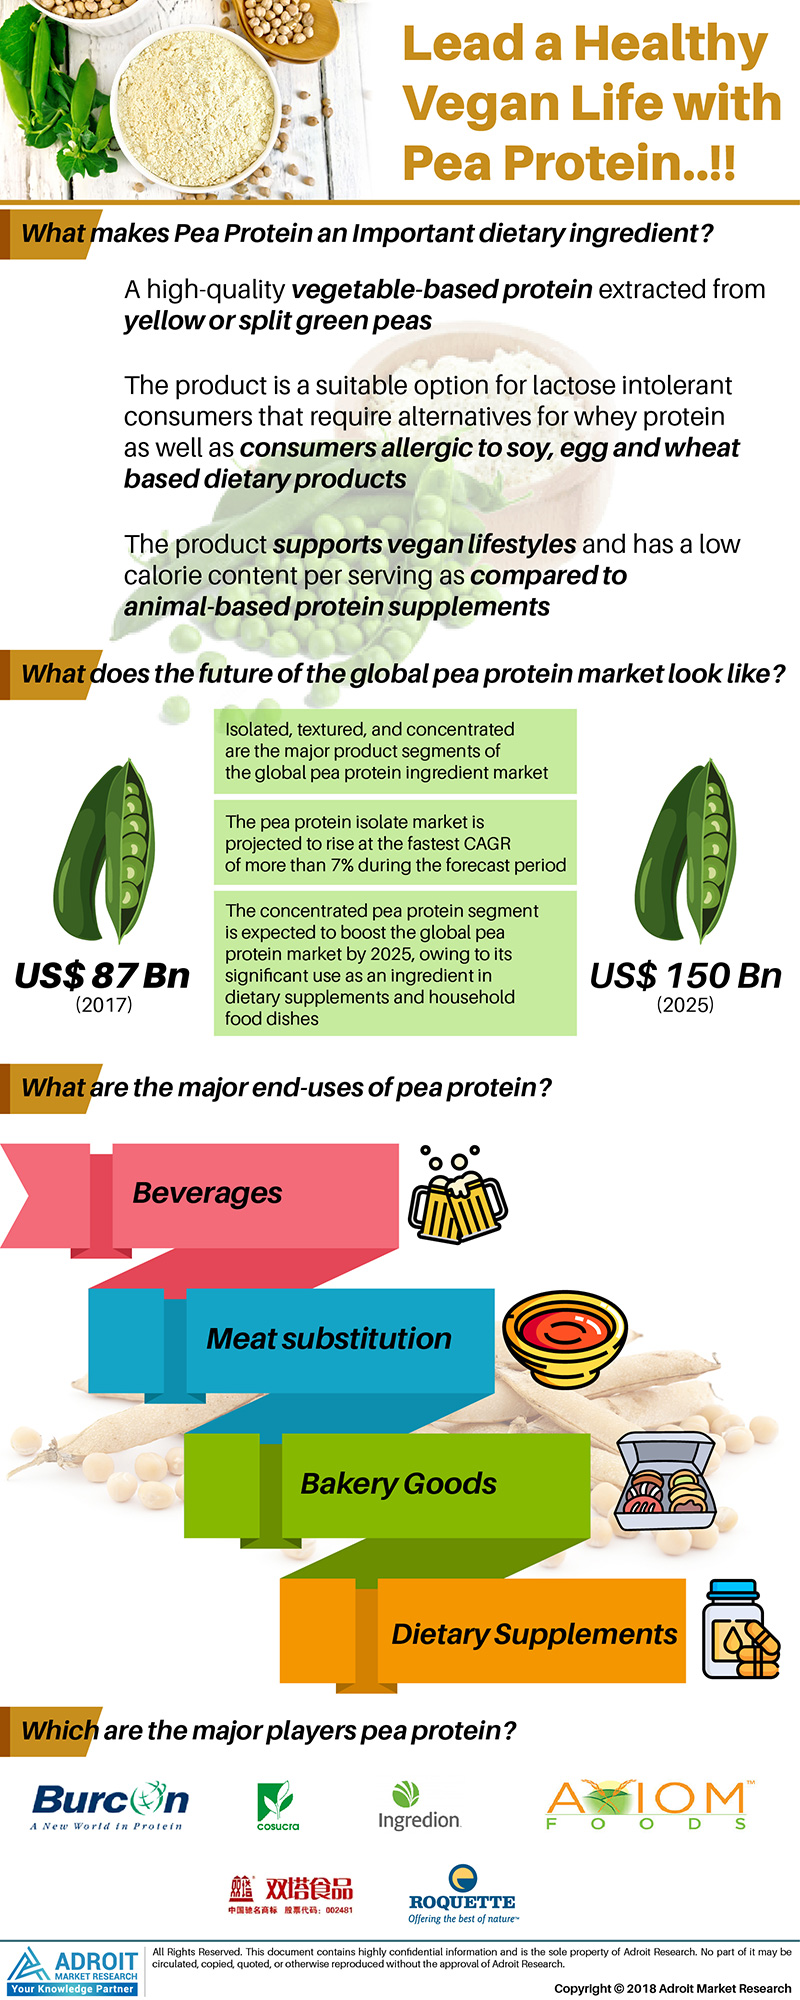 Global Pea Protein Market Size 2017 By Product Type, Application, Region and Forecast 2018 to 2025